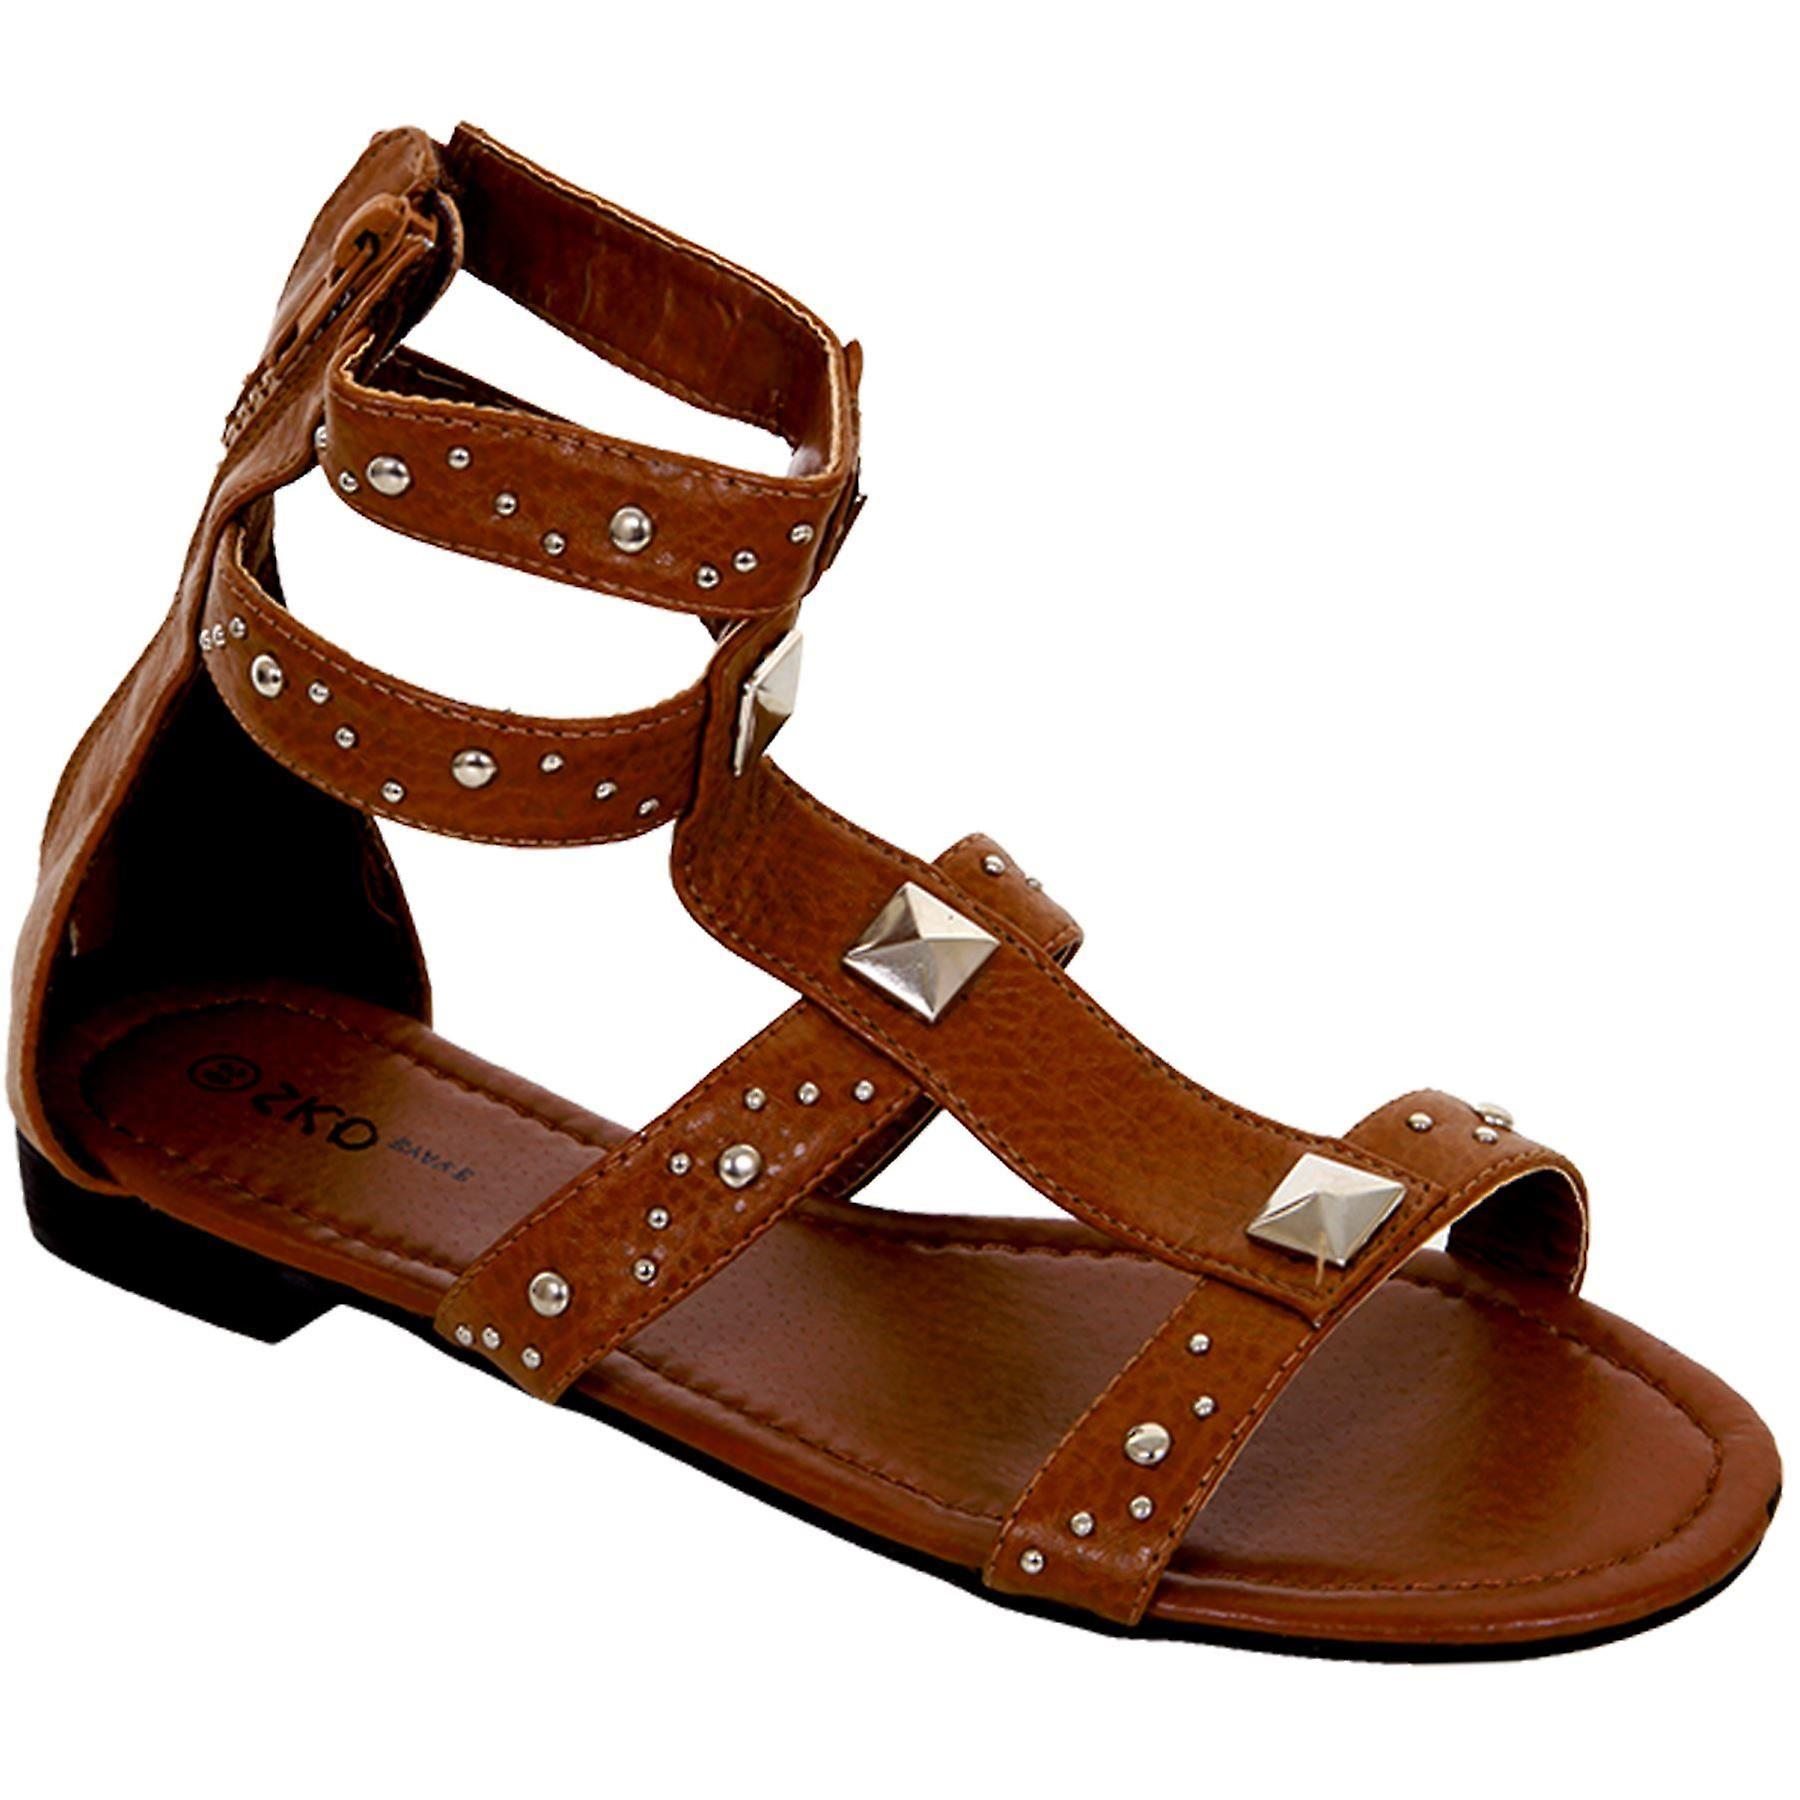 Ladies Tan Gladiator Flat Shoes Women's Small Heel Studded Zip Back Sandals